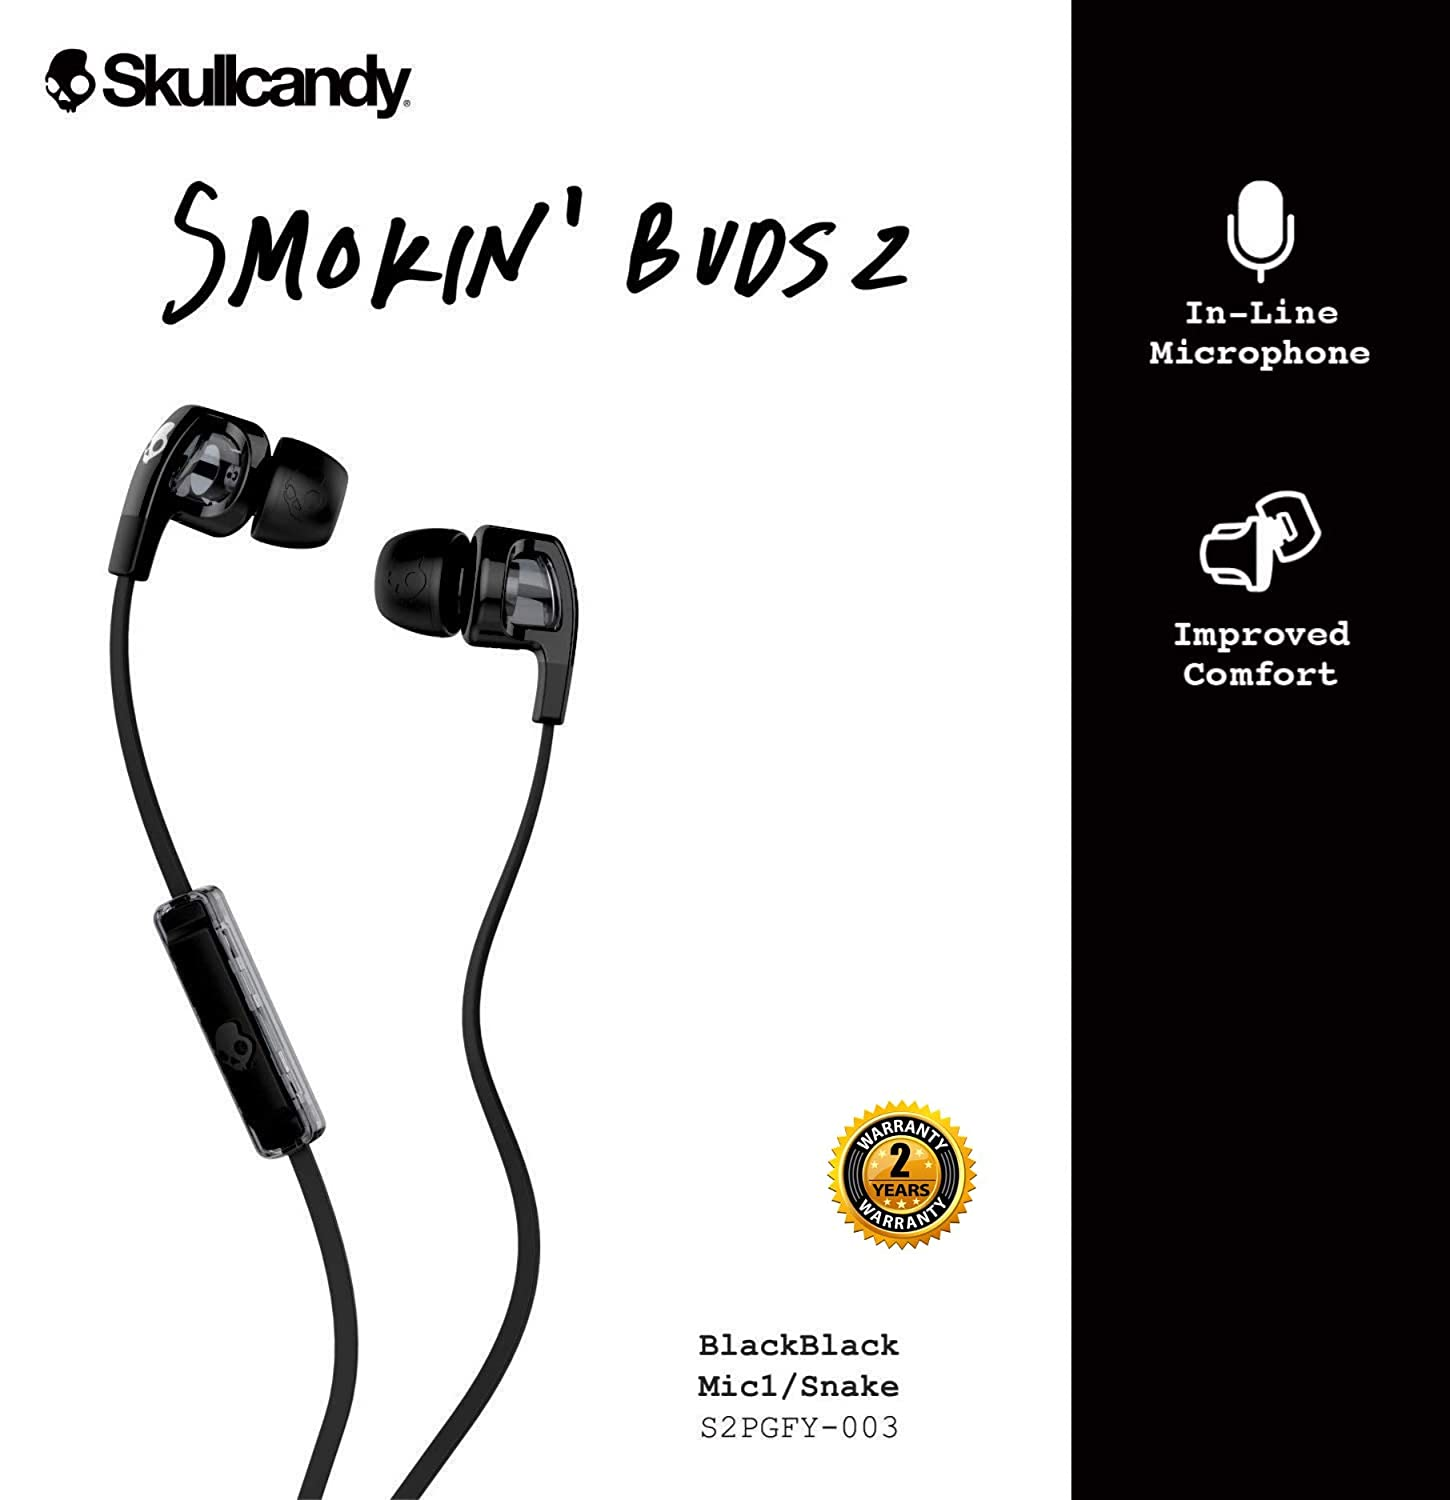 Oval-Shaped and Angled for Long-Term Comfort Iridium//Black Skullcandy S2PGGY-392 Smokin Buds 2 Noise Isolating Earbuds with In-Line Microphone and Remote Moisture Resistant